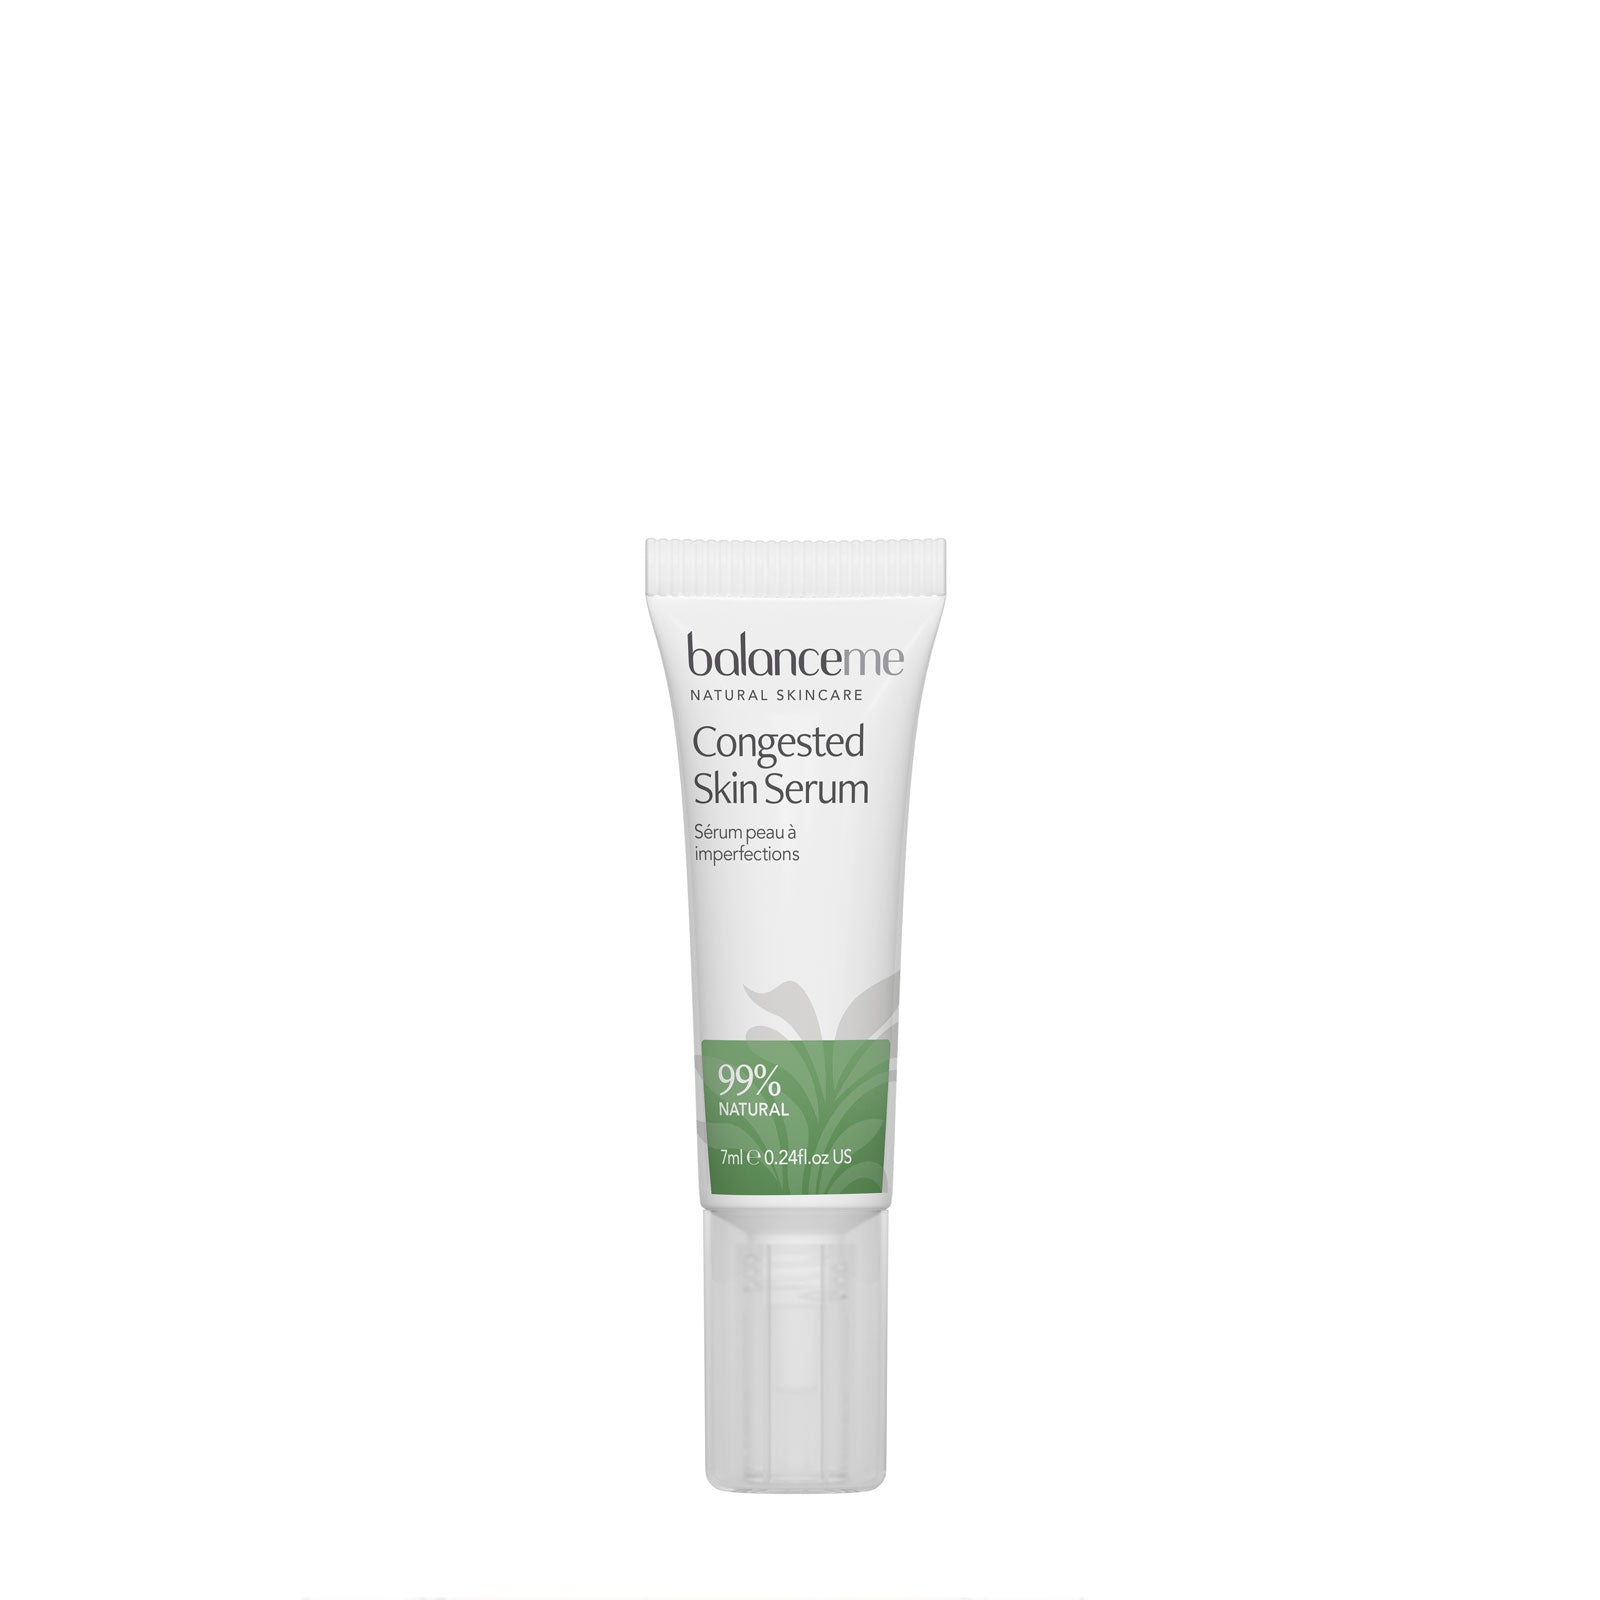 Balance Me Congested Skin Serum 7ml